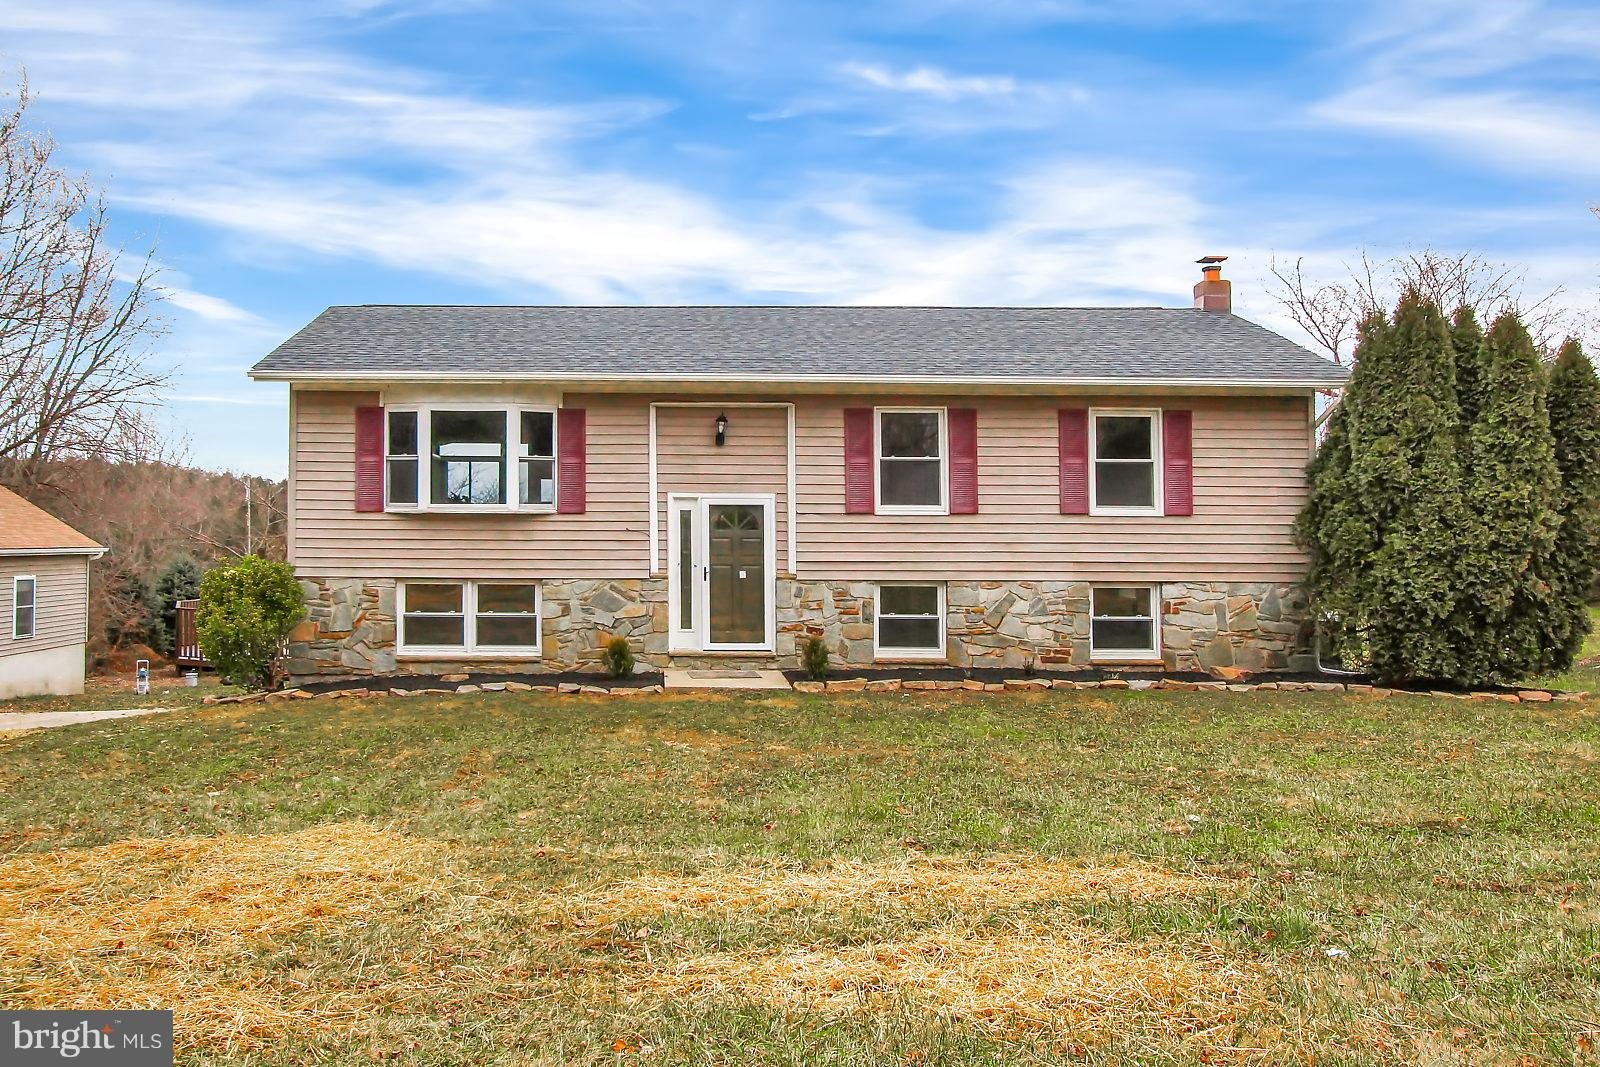 1371 FAWN GROVE ROAD, NEW PARK, PA 17352